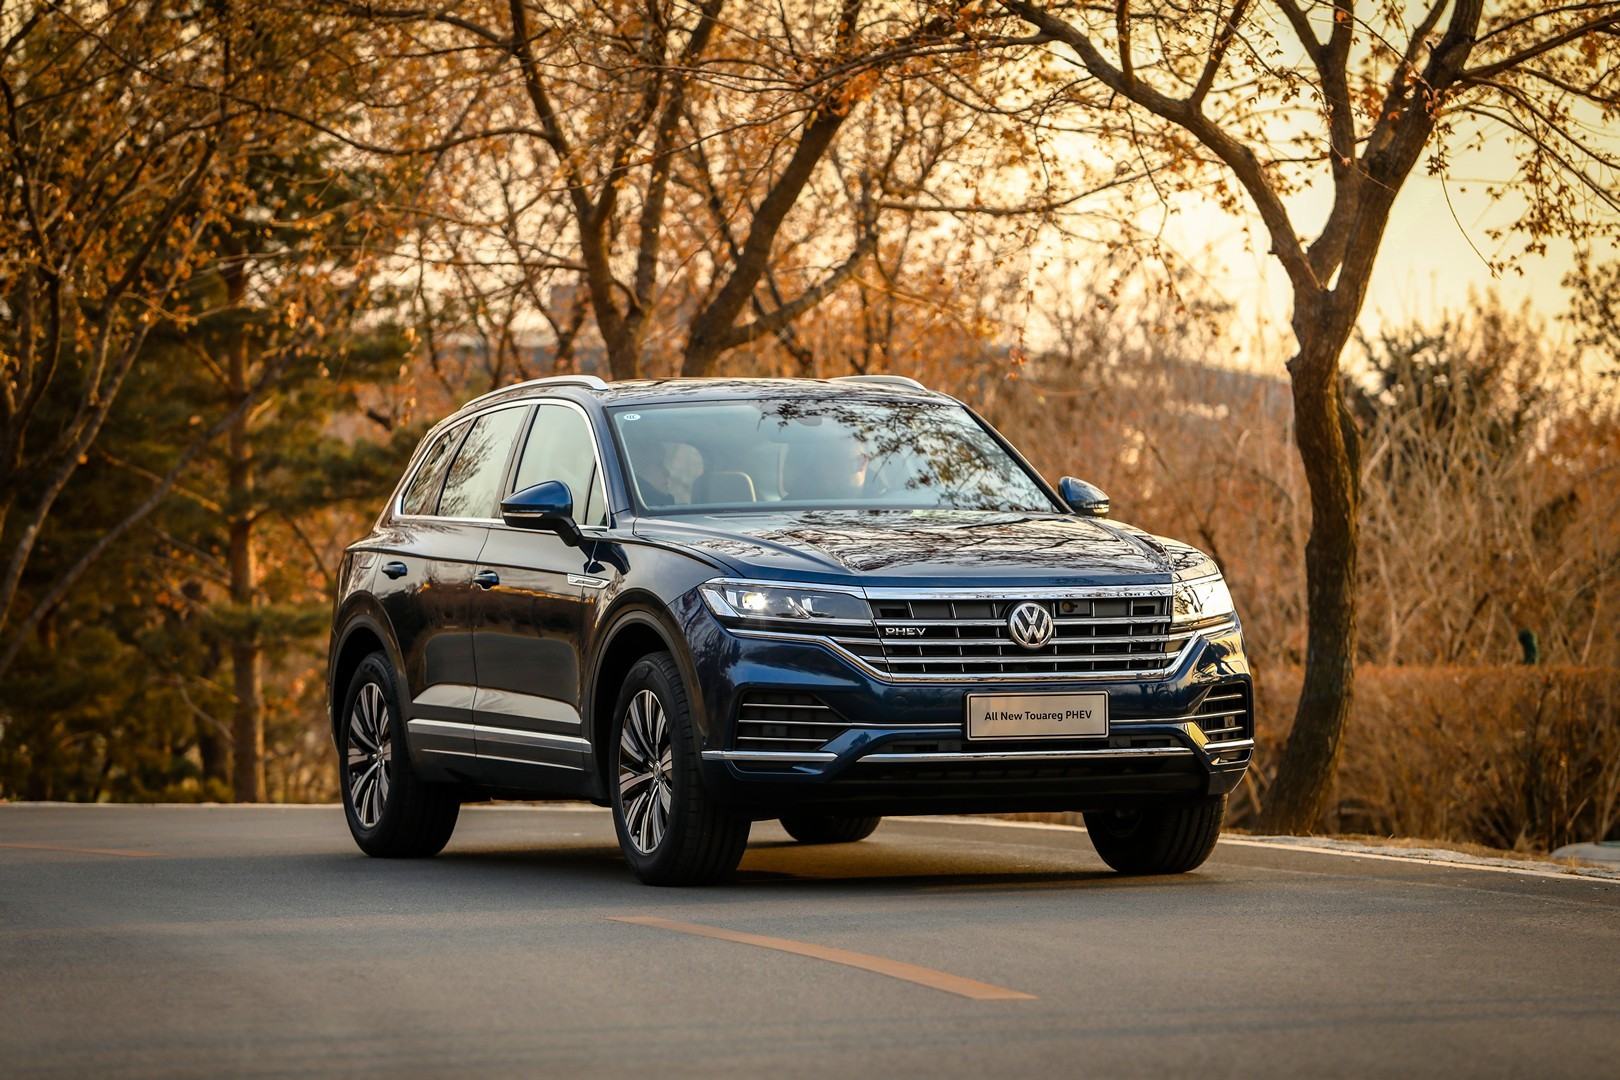 New Volkswagen Touareg Phev Debuts With 367 Hp 2 0 Tsi System